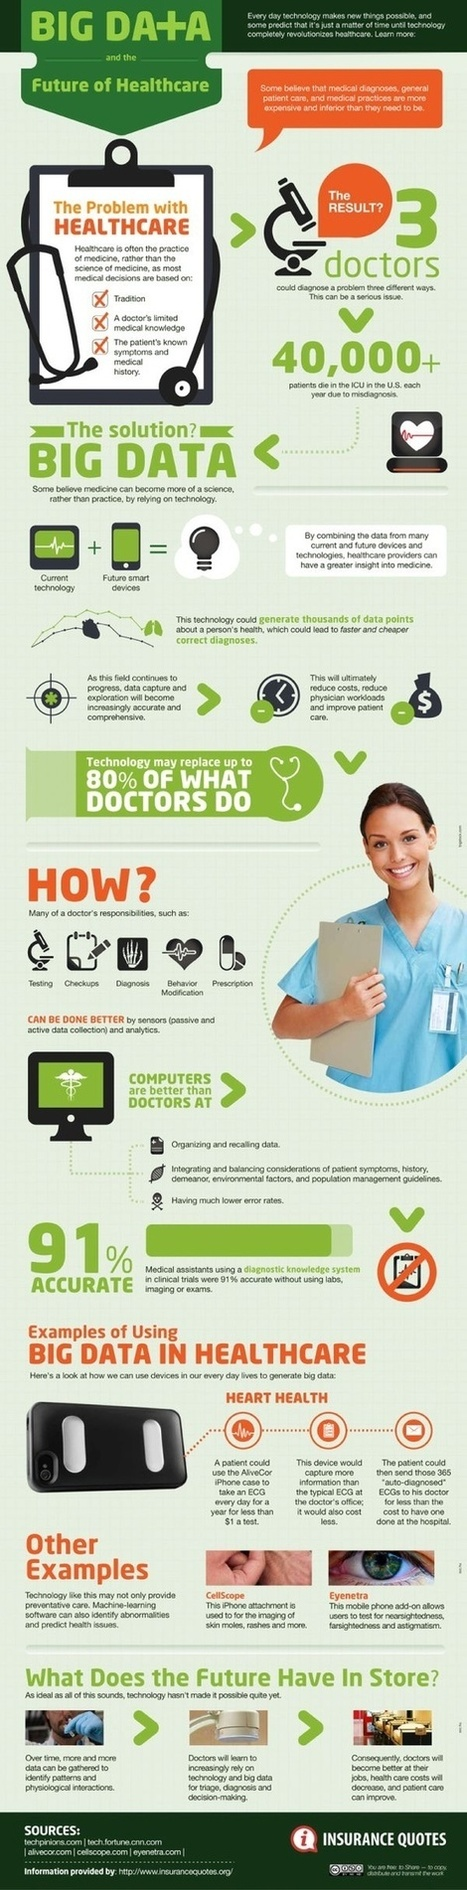 Infografía: Big Data and the future of Healthcare | Salud Social Media | Scoop.it